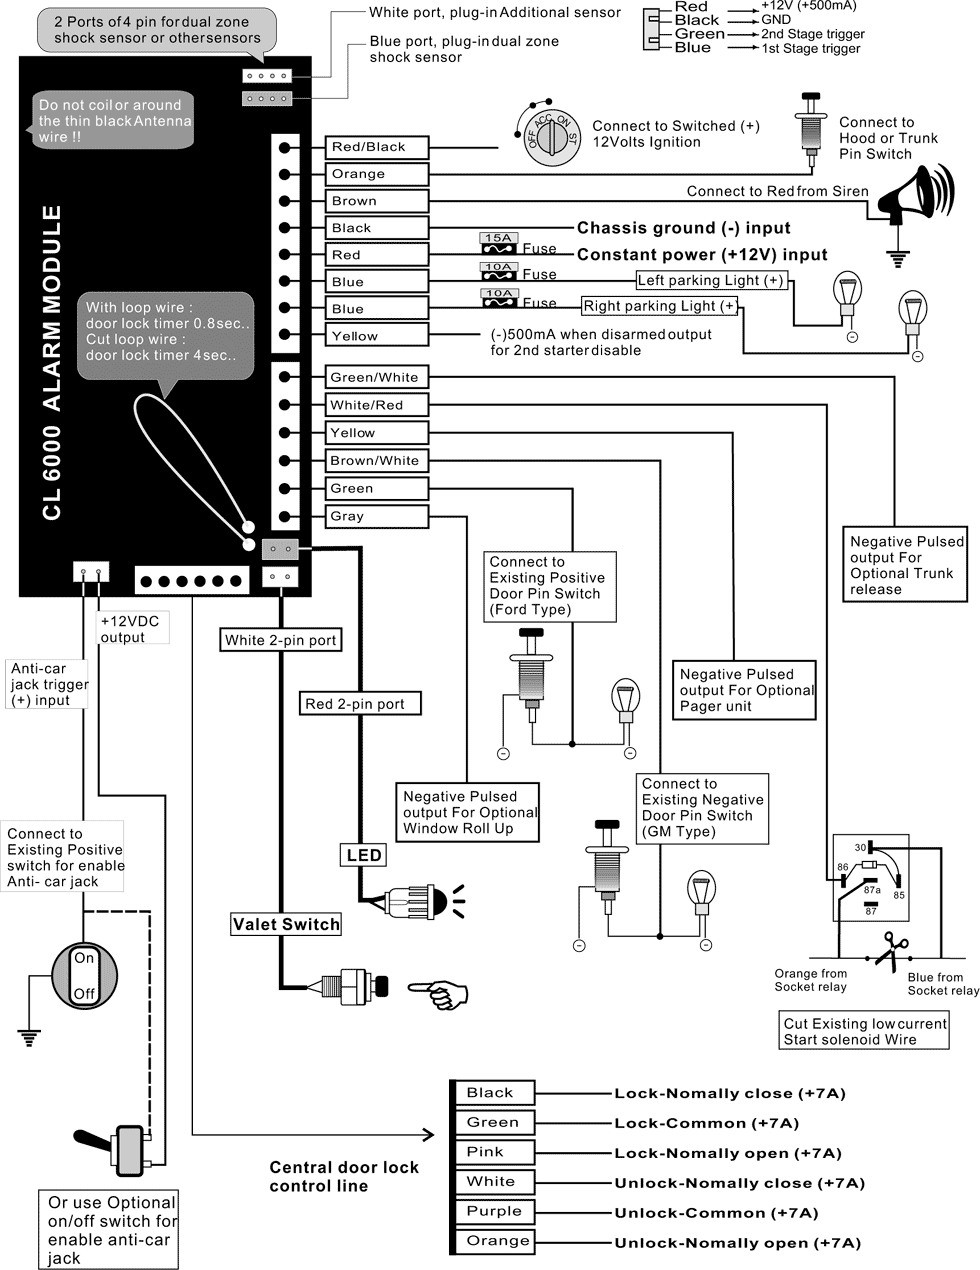 Car alarm installation wire diagram download wiring diagrams alarm car wiring diagrams easy to read wiring diagrams u2022 rh mywiringdiagram today car alarm installation wire diagram car stereo installation wire asfbconference2016 Images